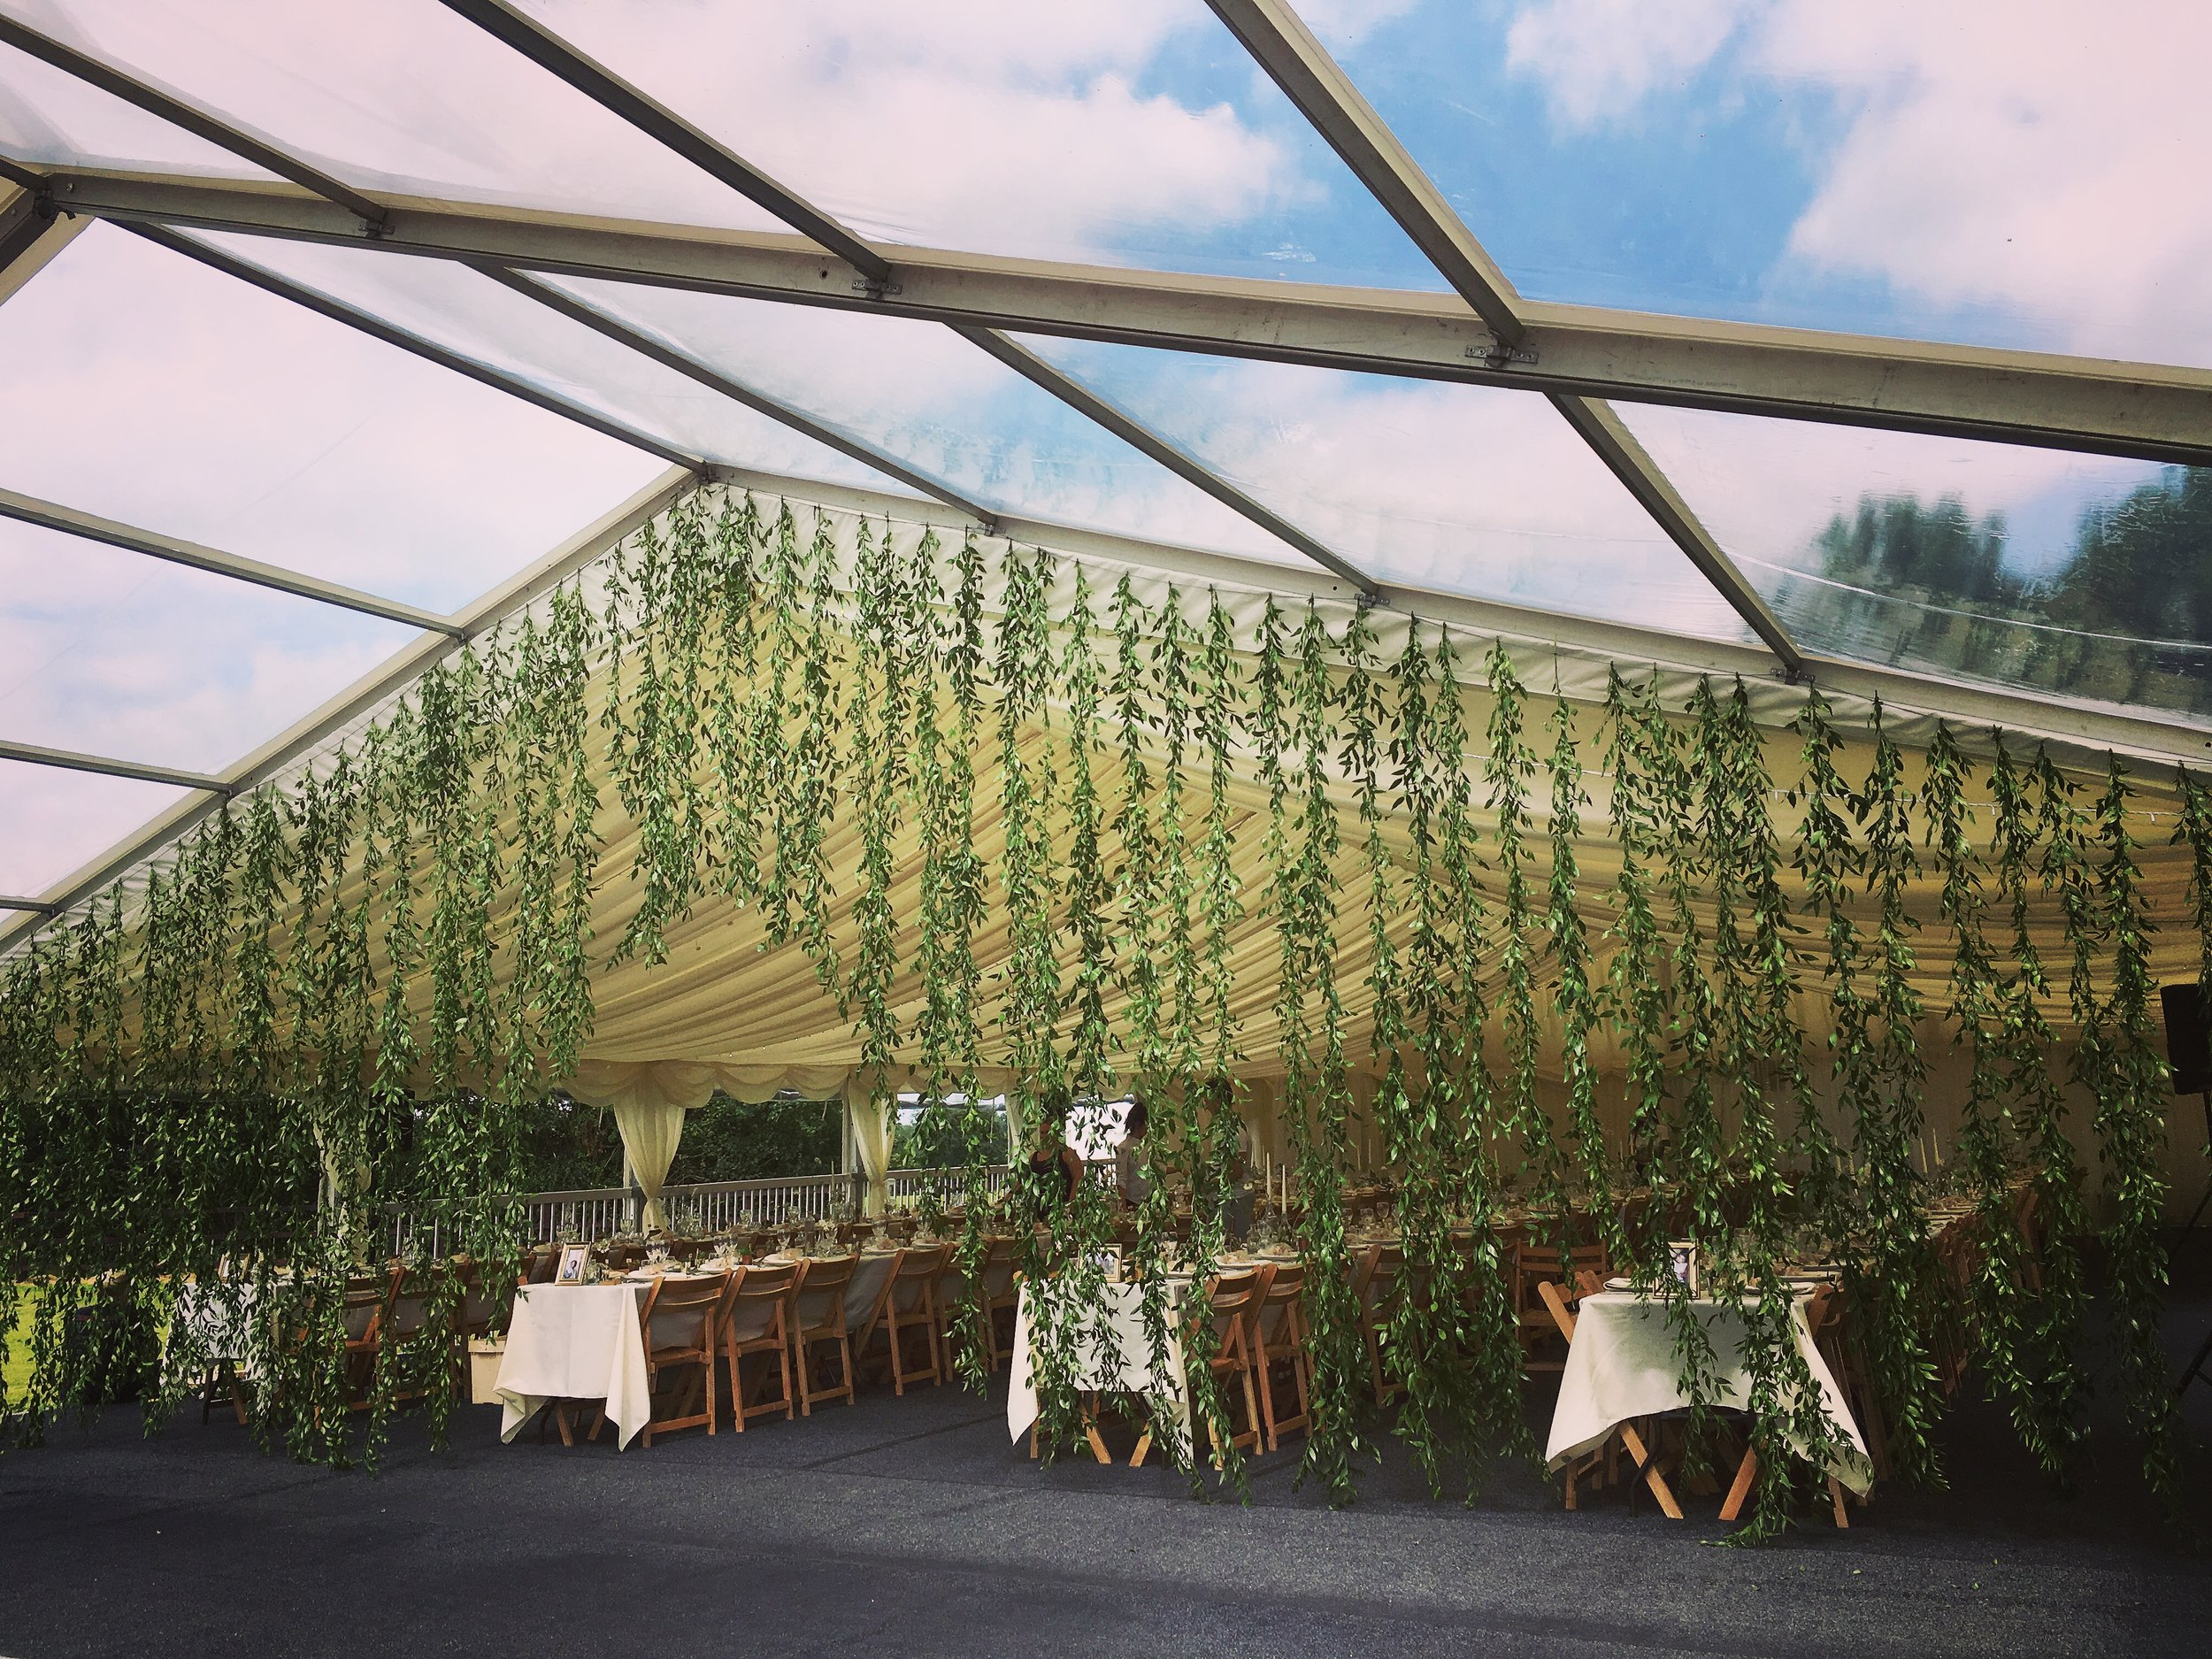 The all foliage curtain creating an effective divide between eating and dancing but also being a real talking point for your guests